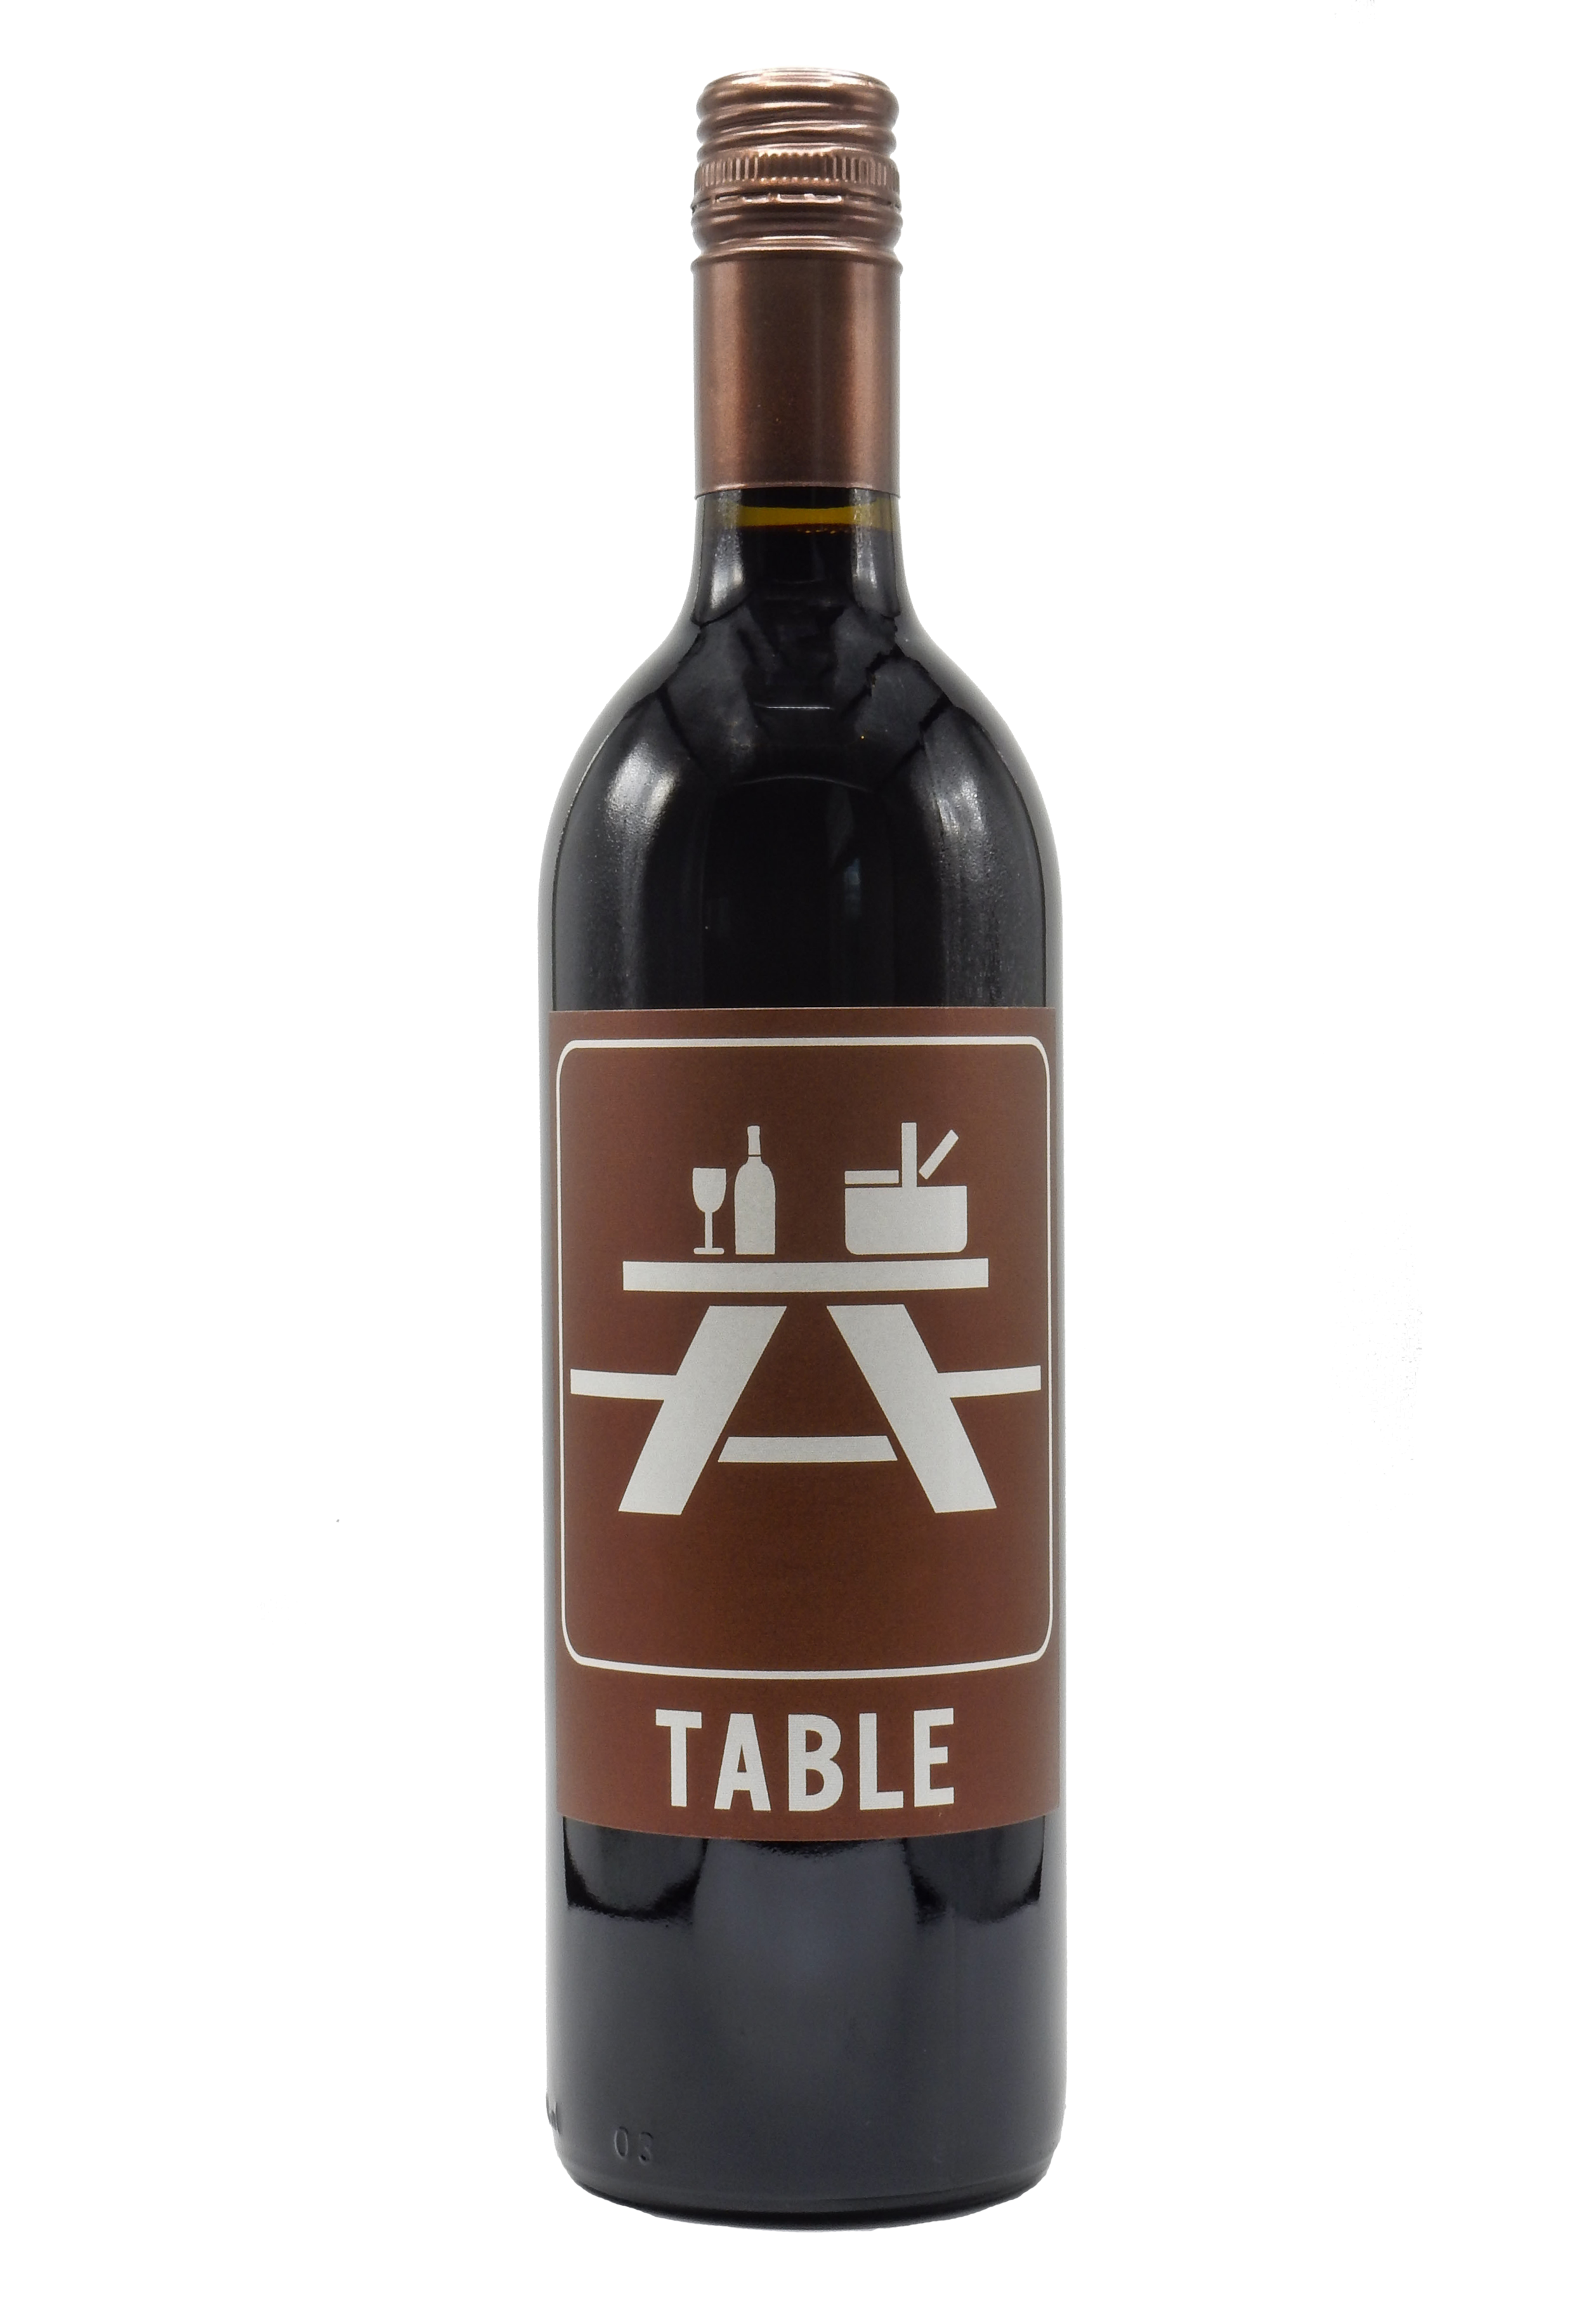 Table_Transparent.png